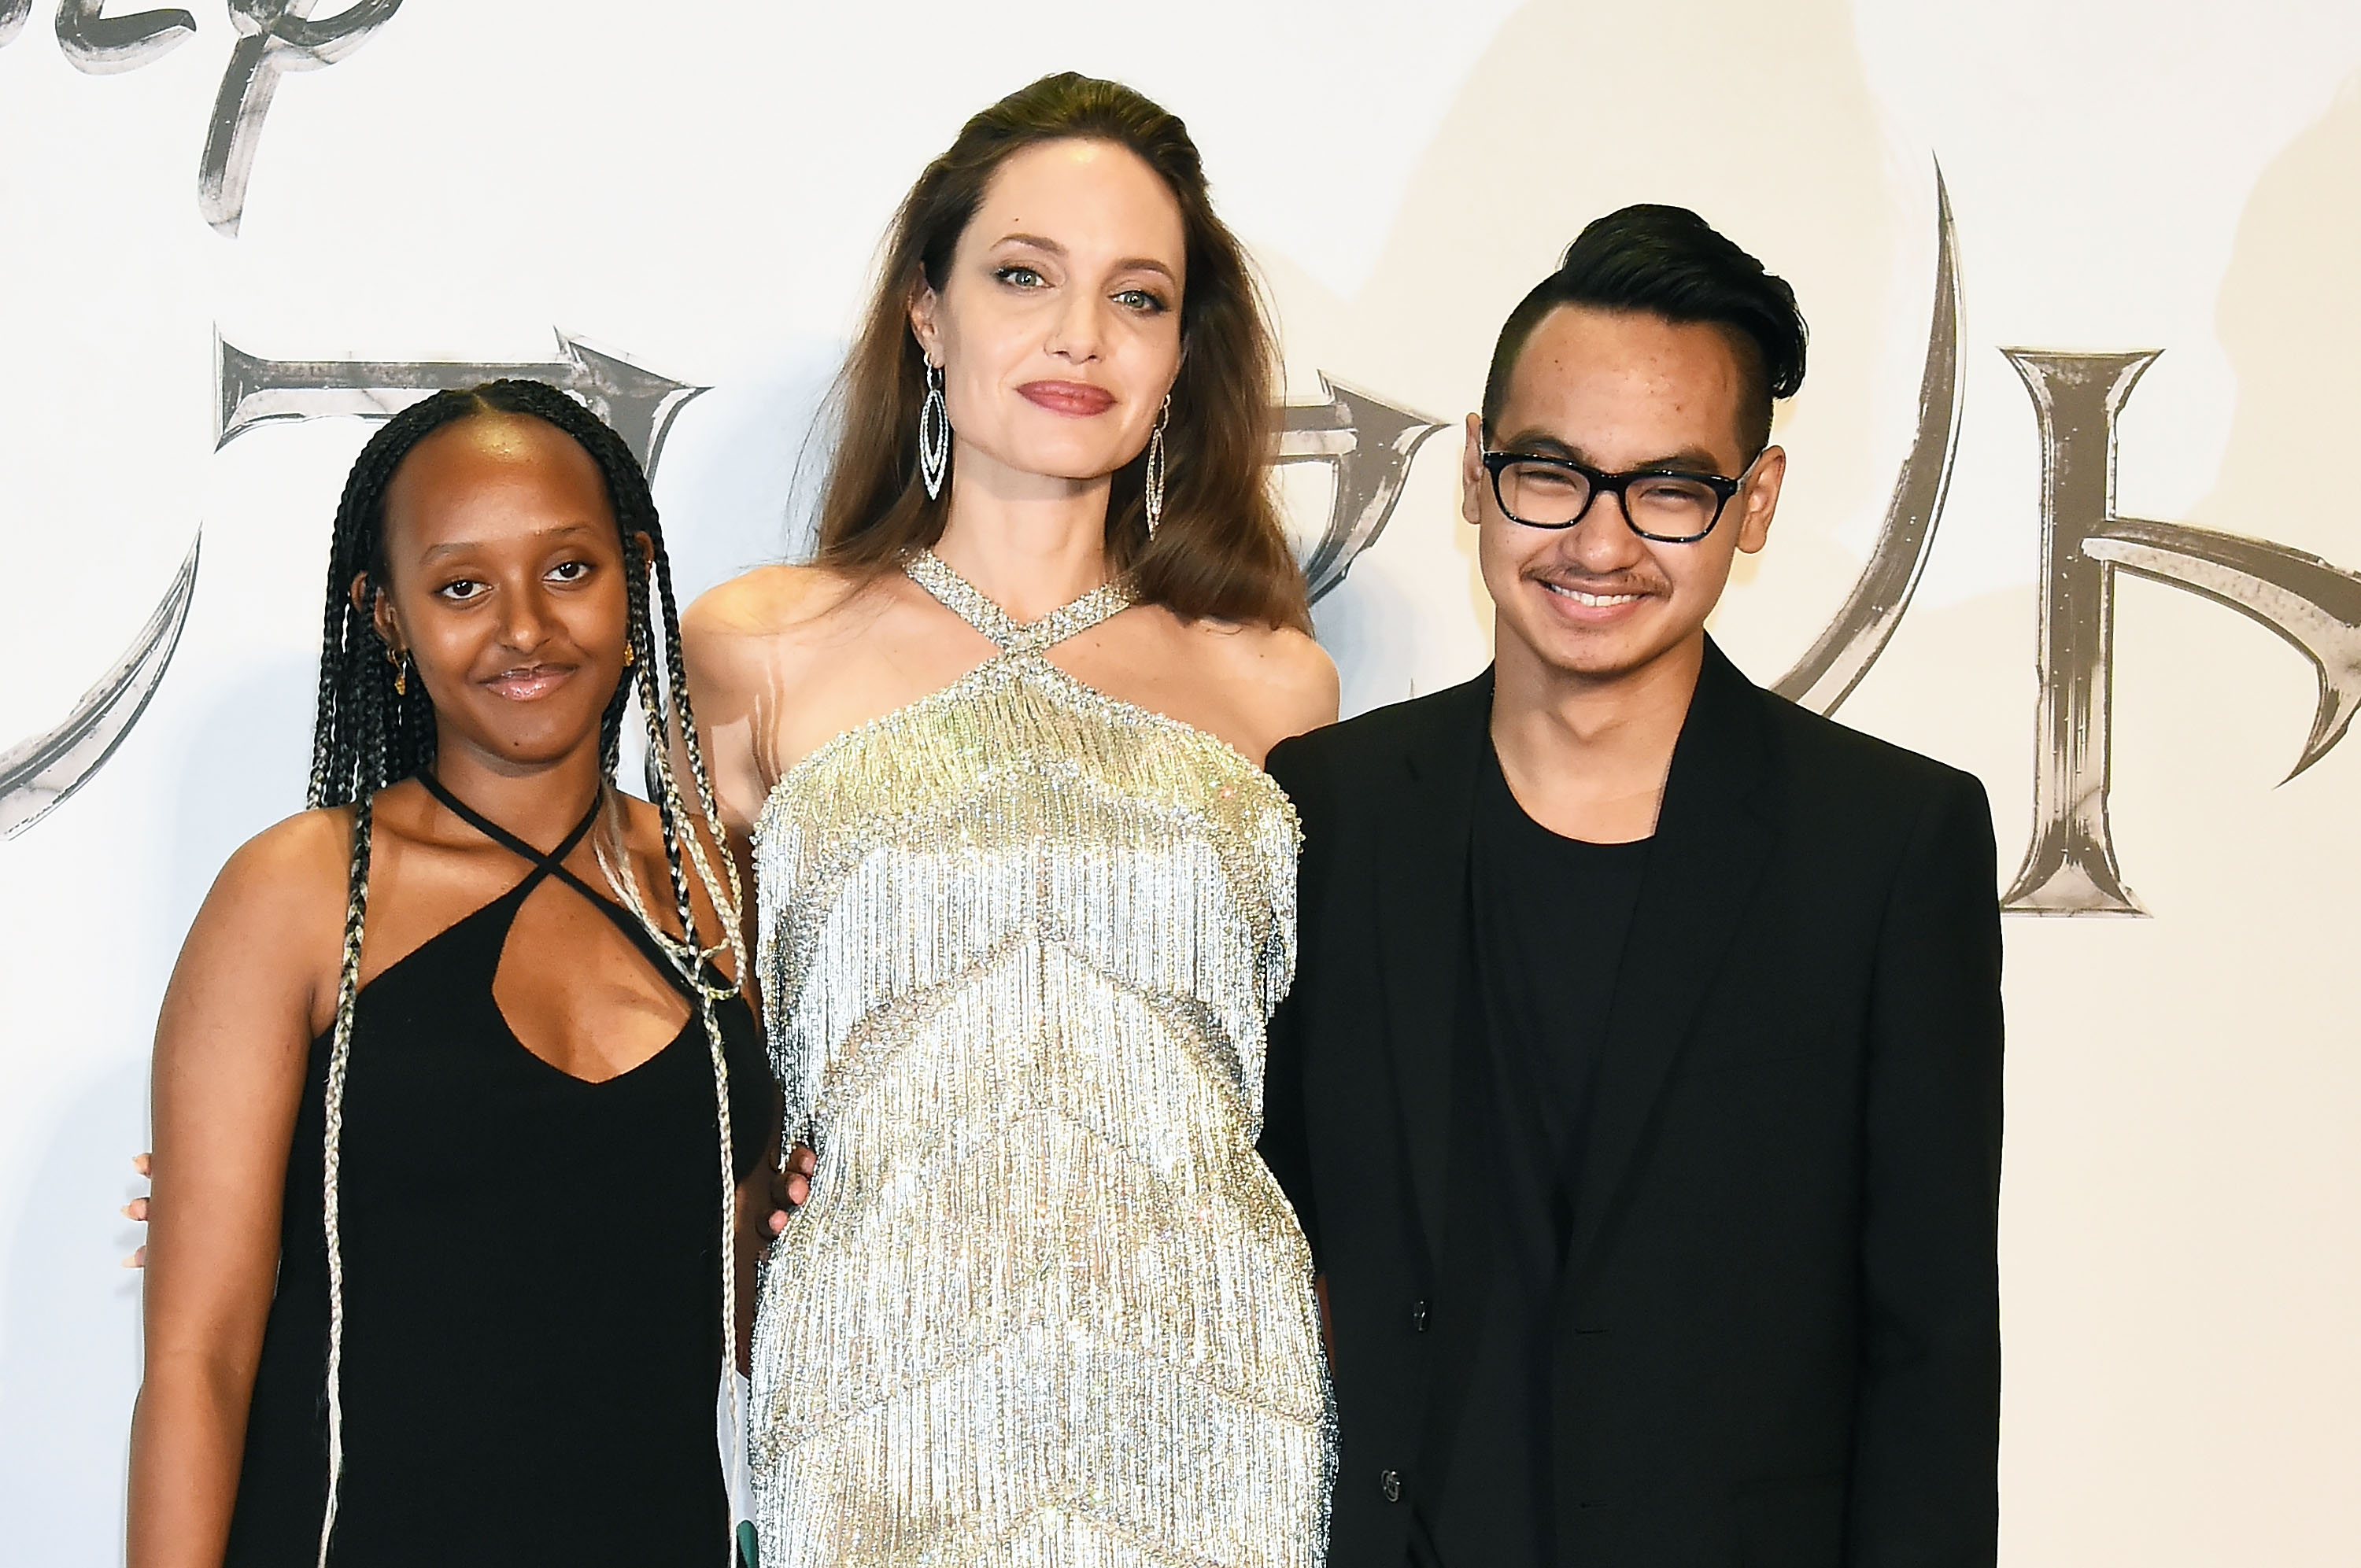 Westlake Legal Group GettyImages-1173401558 Angelina Jolie praises son Maddox, notes he 'got tattooed' fox-news/travel/general/disney fox-news/entertainment/genres/family fox-news/entertainment fox news fnc/entertainment fnc article Andy Sahadeo 3dab5d3b-3390-5acc-83fb-36a7a168fcfd